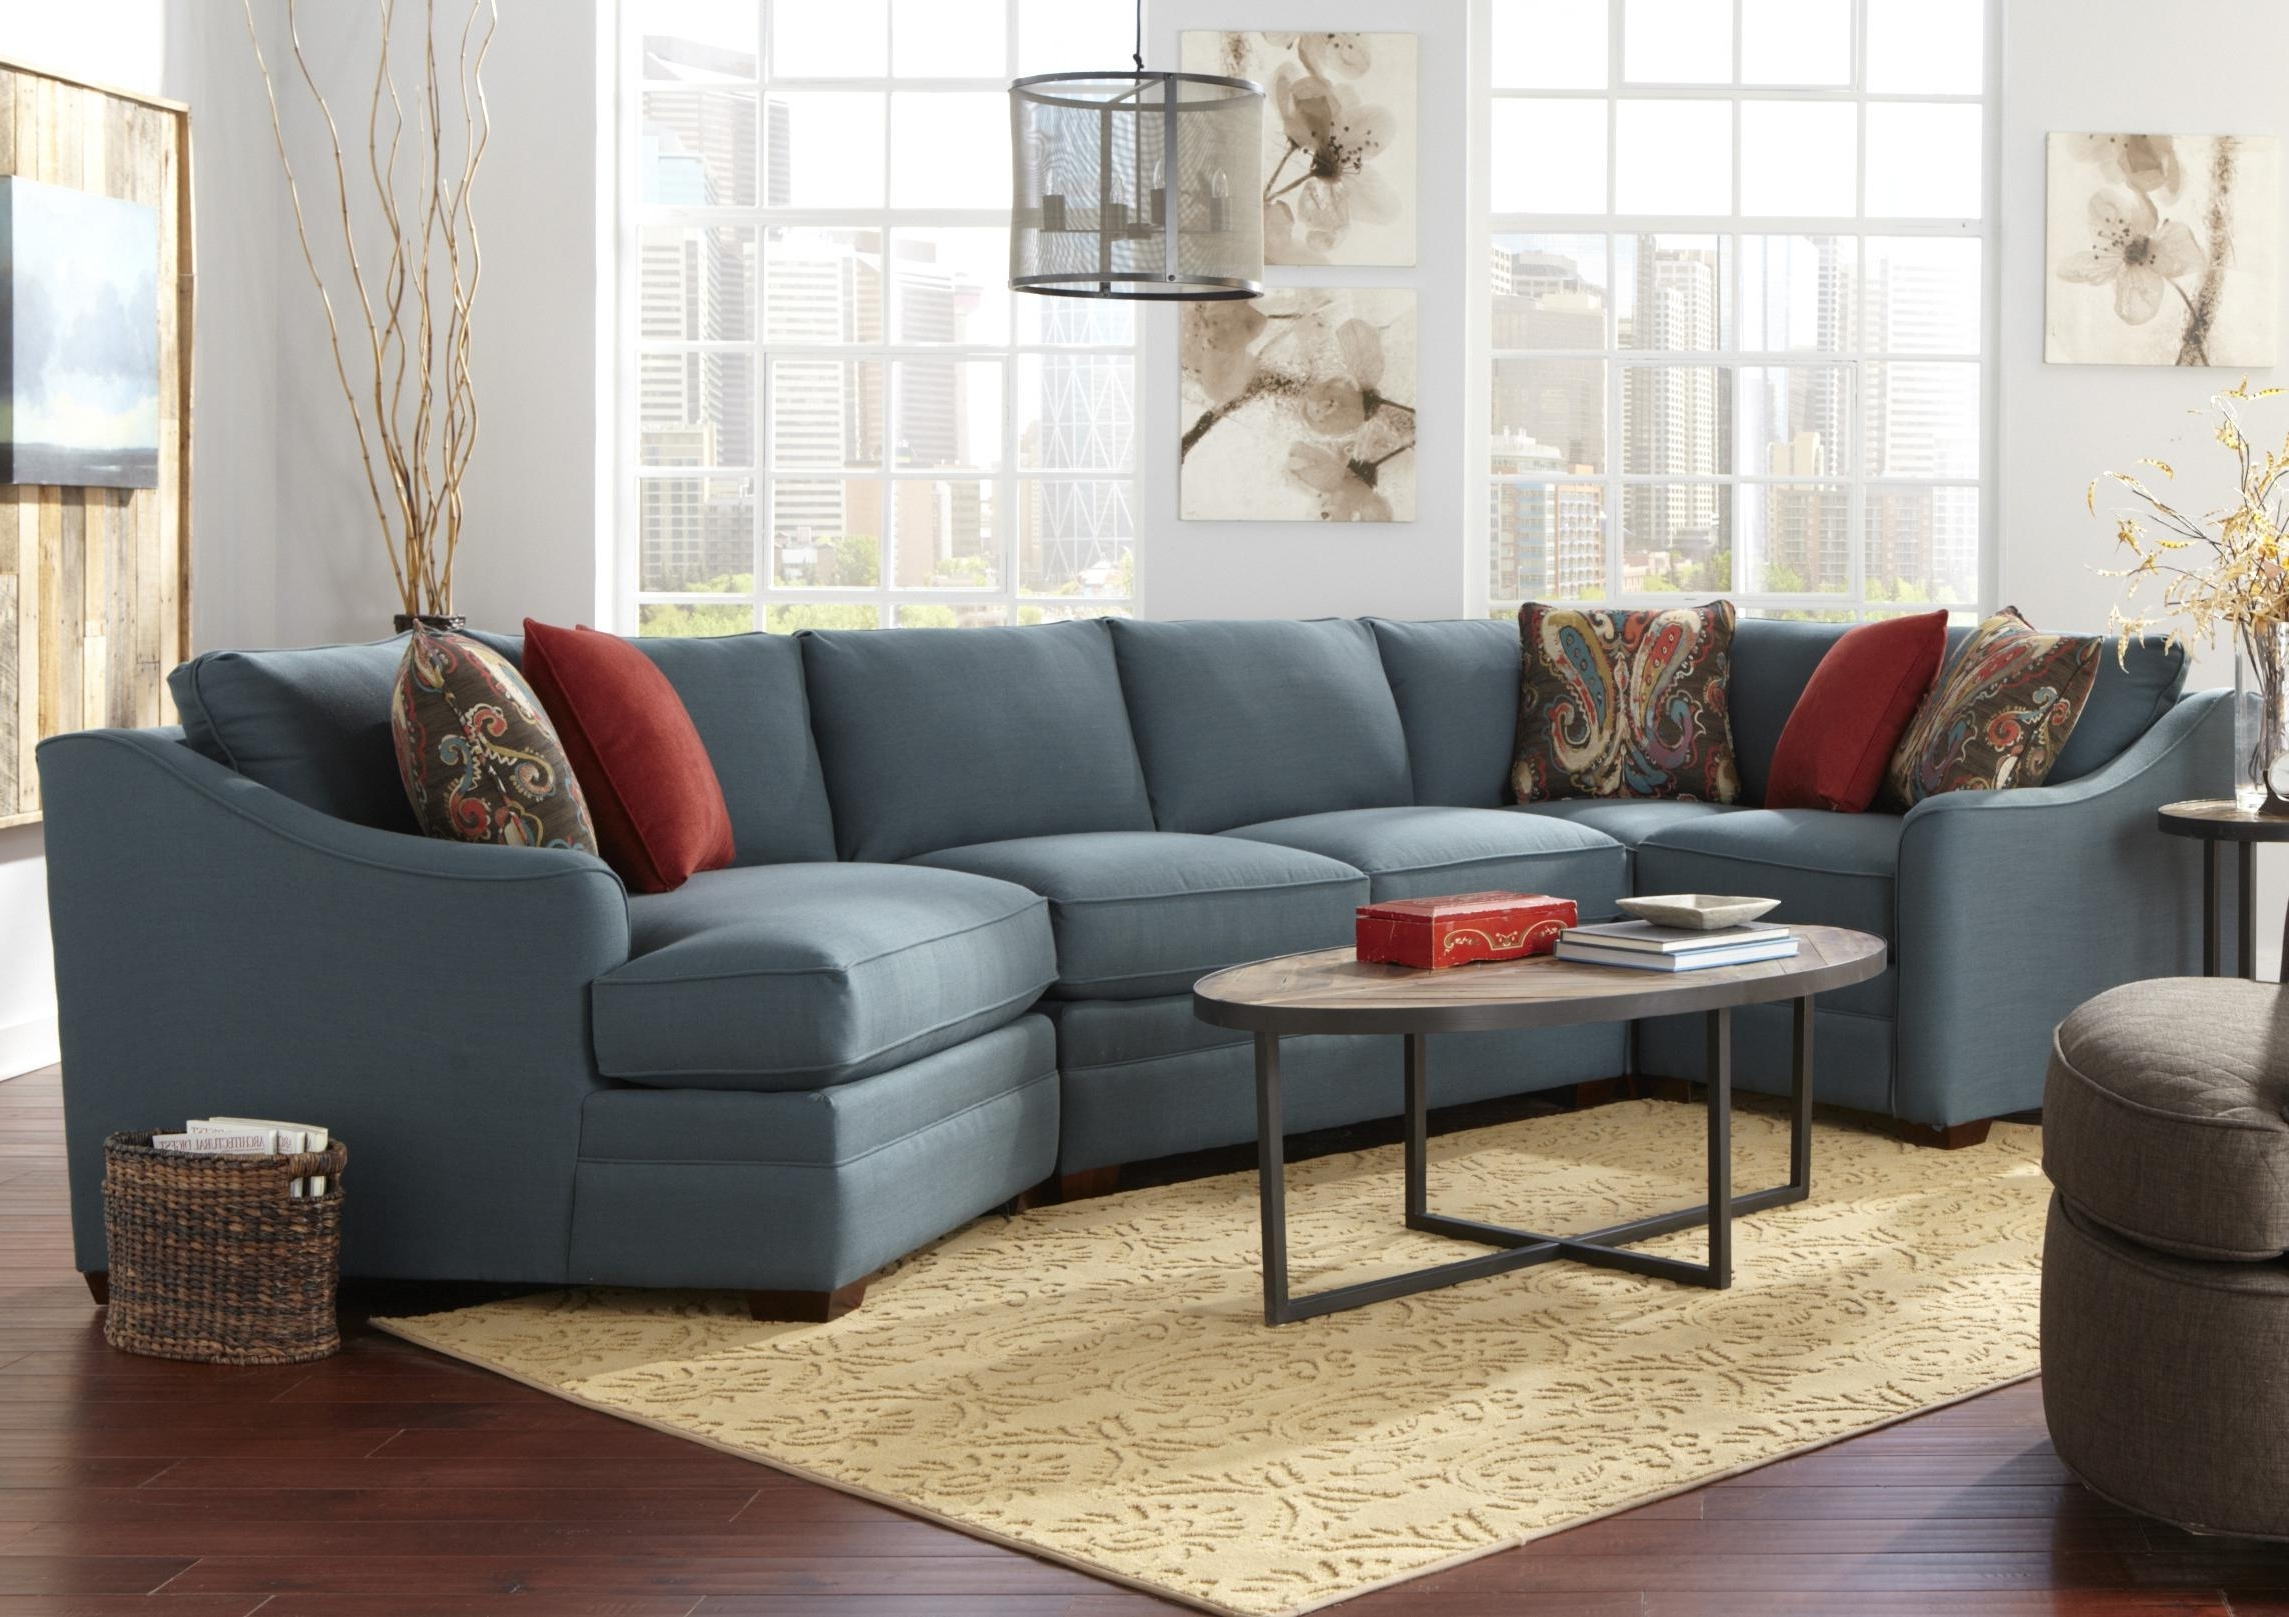 Most Popular Sectional Sofas With Cuddler Chaise With Regard To Four Piece <b>customizable</b> Sectional Sofa With Raf Cuddler (View 5 of 15)